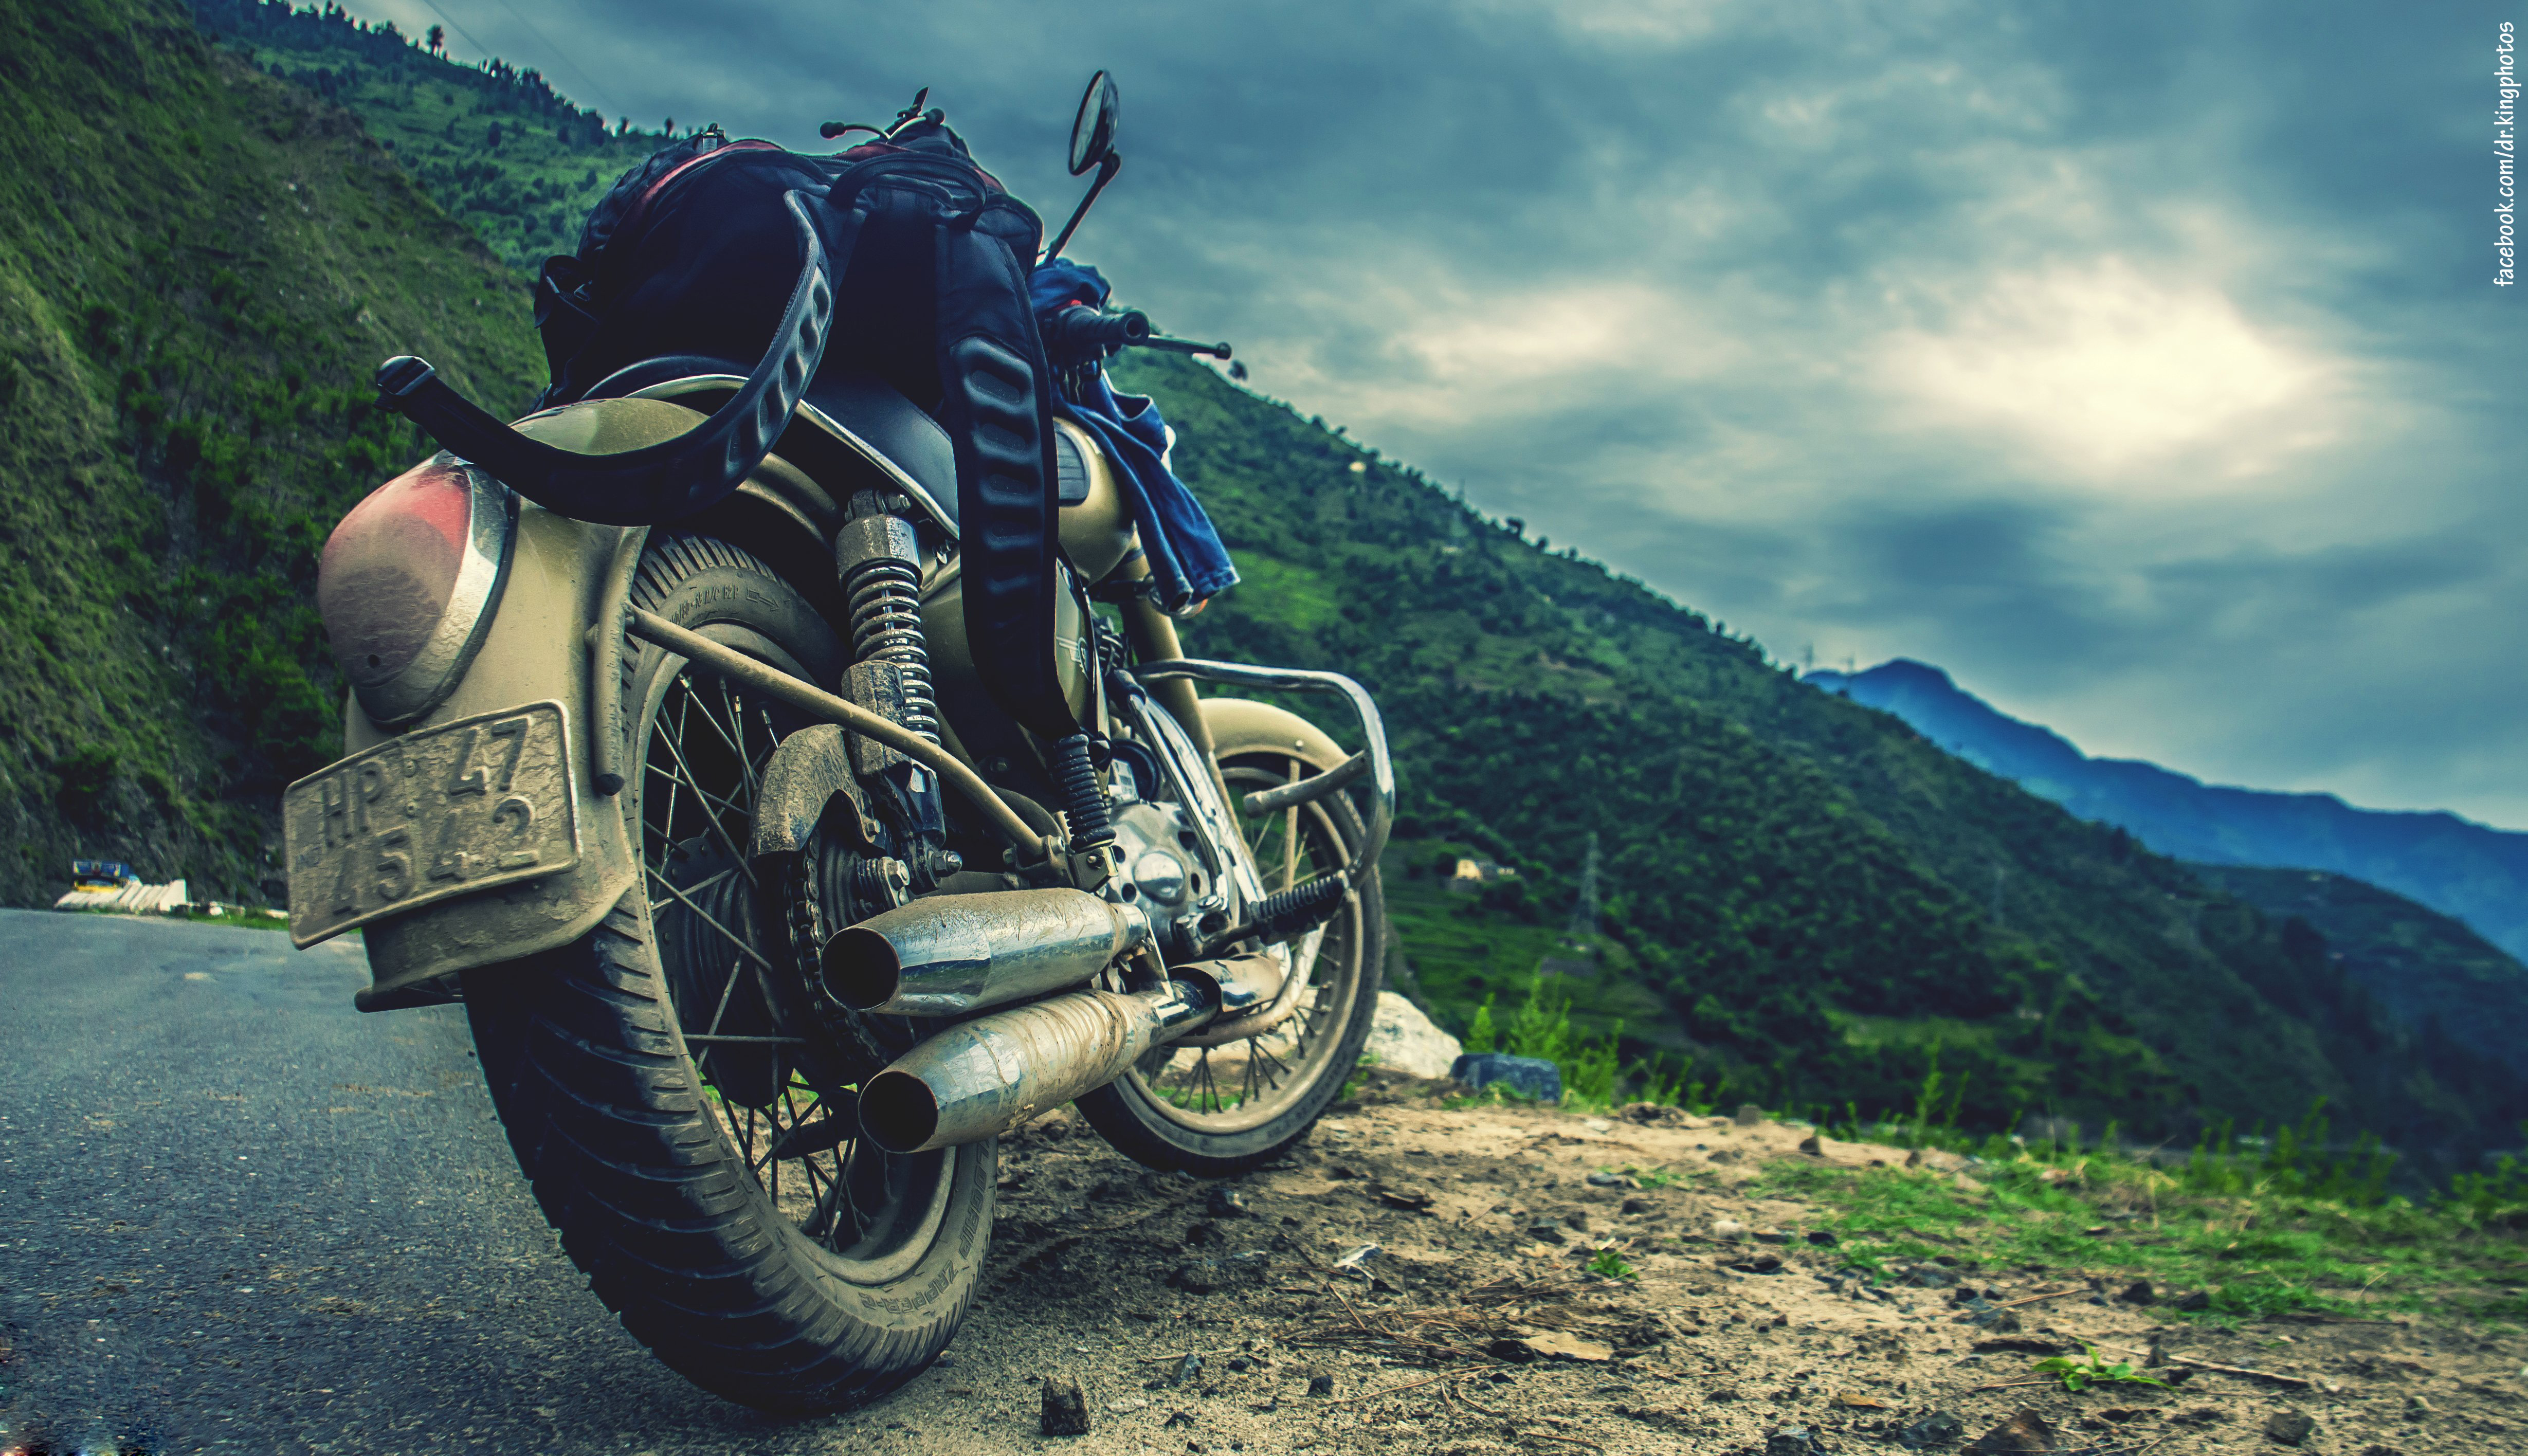 download Motorcycle Backgrounds [4917x2832] for your Desktop 4917x2832